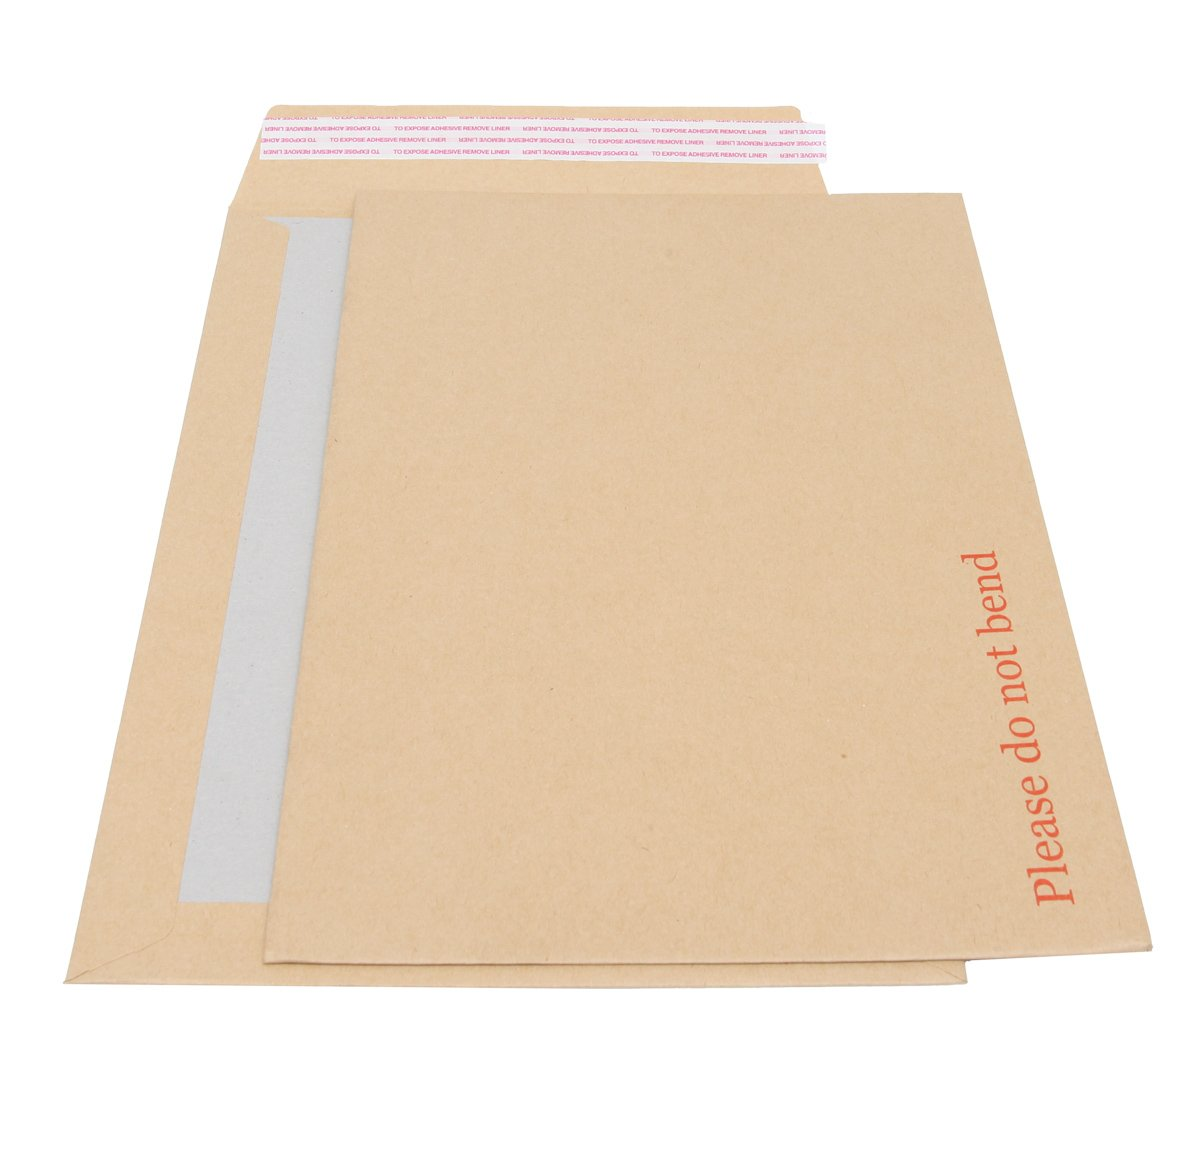 "Board Backed Envelopes A4 - 235 x 328mm. 125 Pack. Rigid Cardboard Back & ""Please Do Not Bend"" Printed On Front Of Thick Strong Manilla. Secure Peel & Seal Closure. Prevents Creasing & Keeps Documents Flat, So Ideal For Mailing Artwork & C"